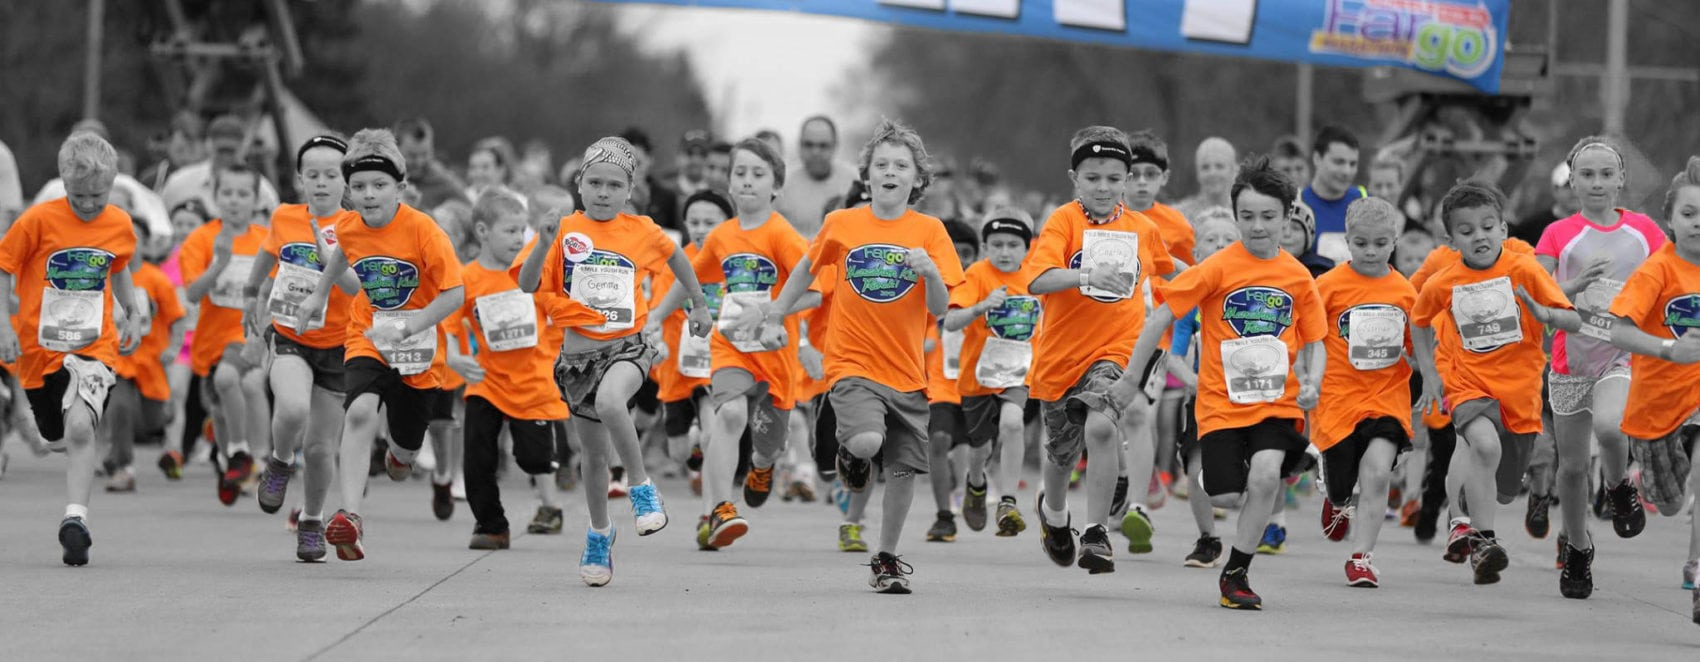 Youth Run | Fargo Marathon